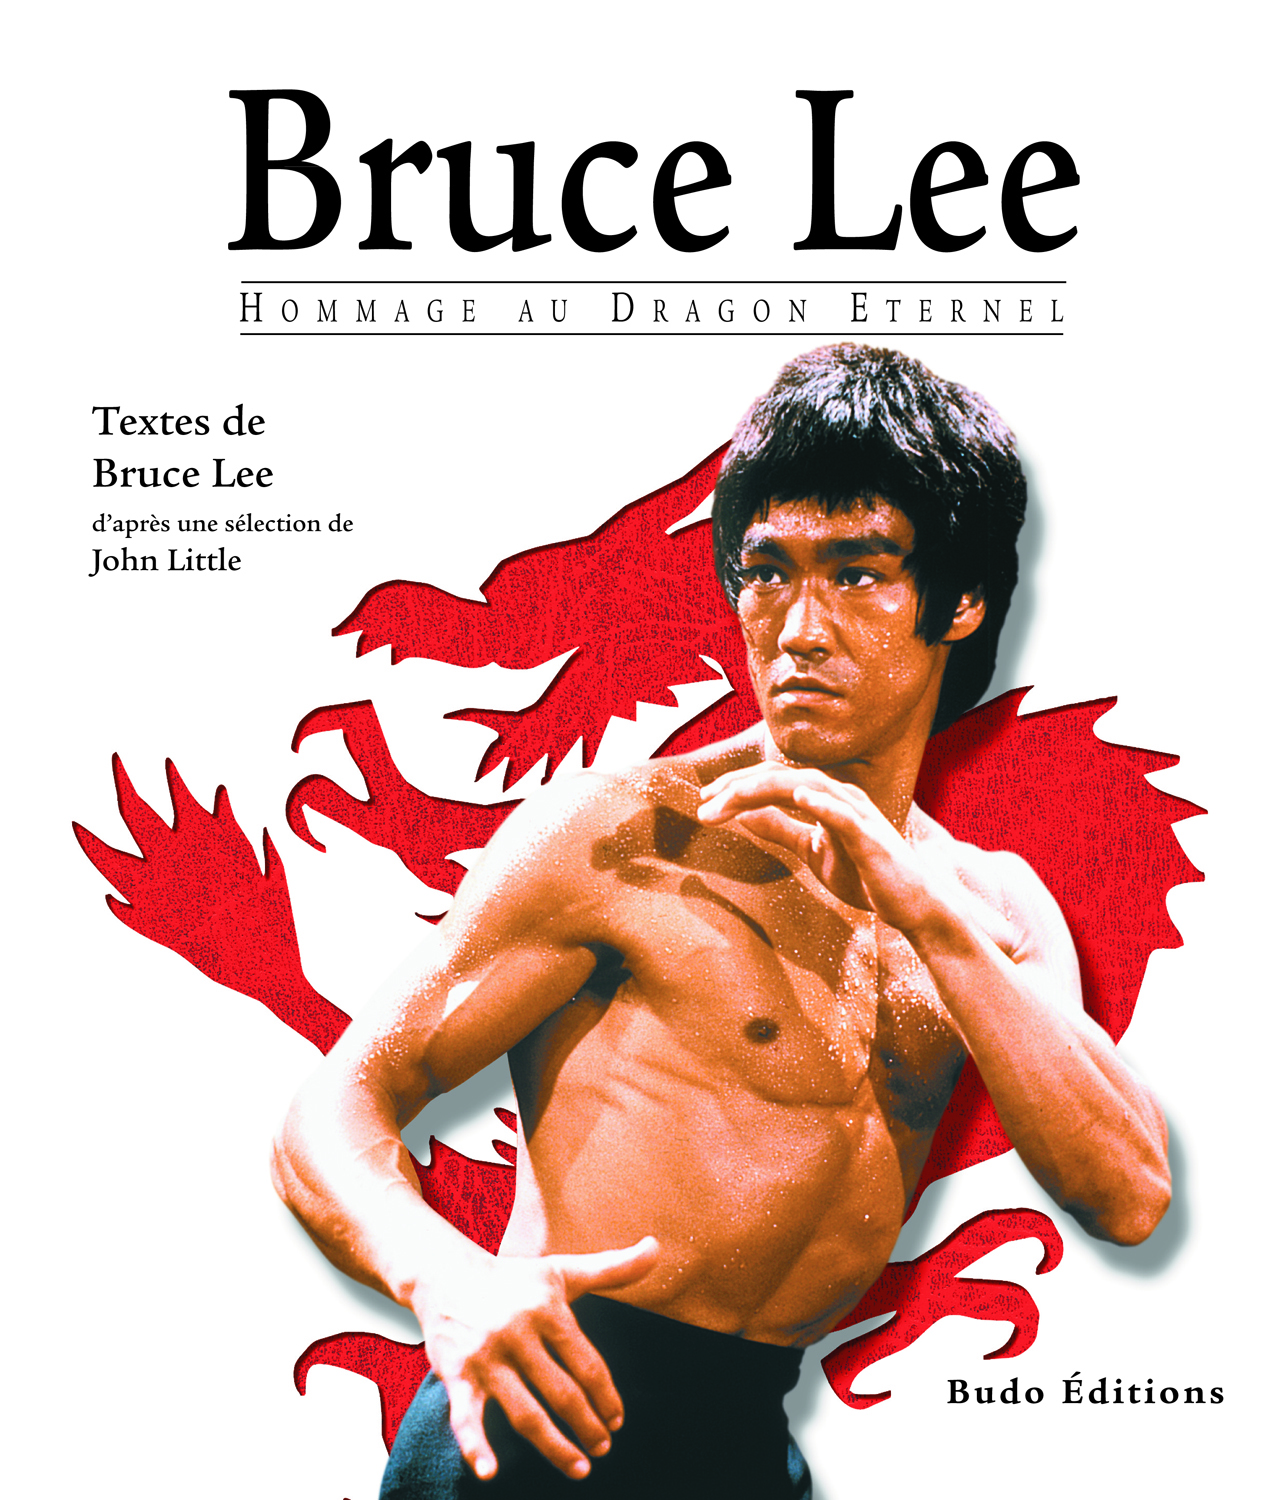 BRUCE LEE HOMMAGE AU DRAGON ETERNEL